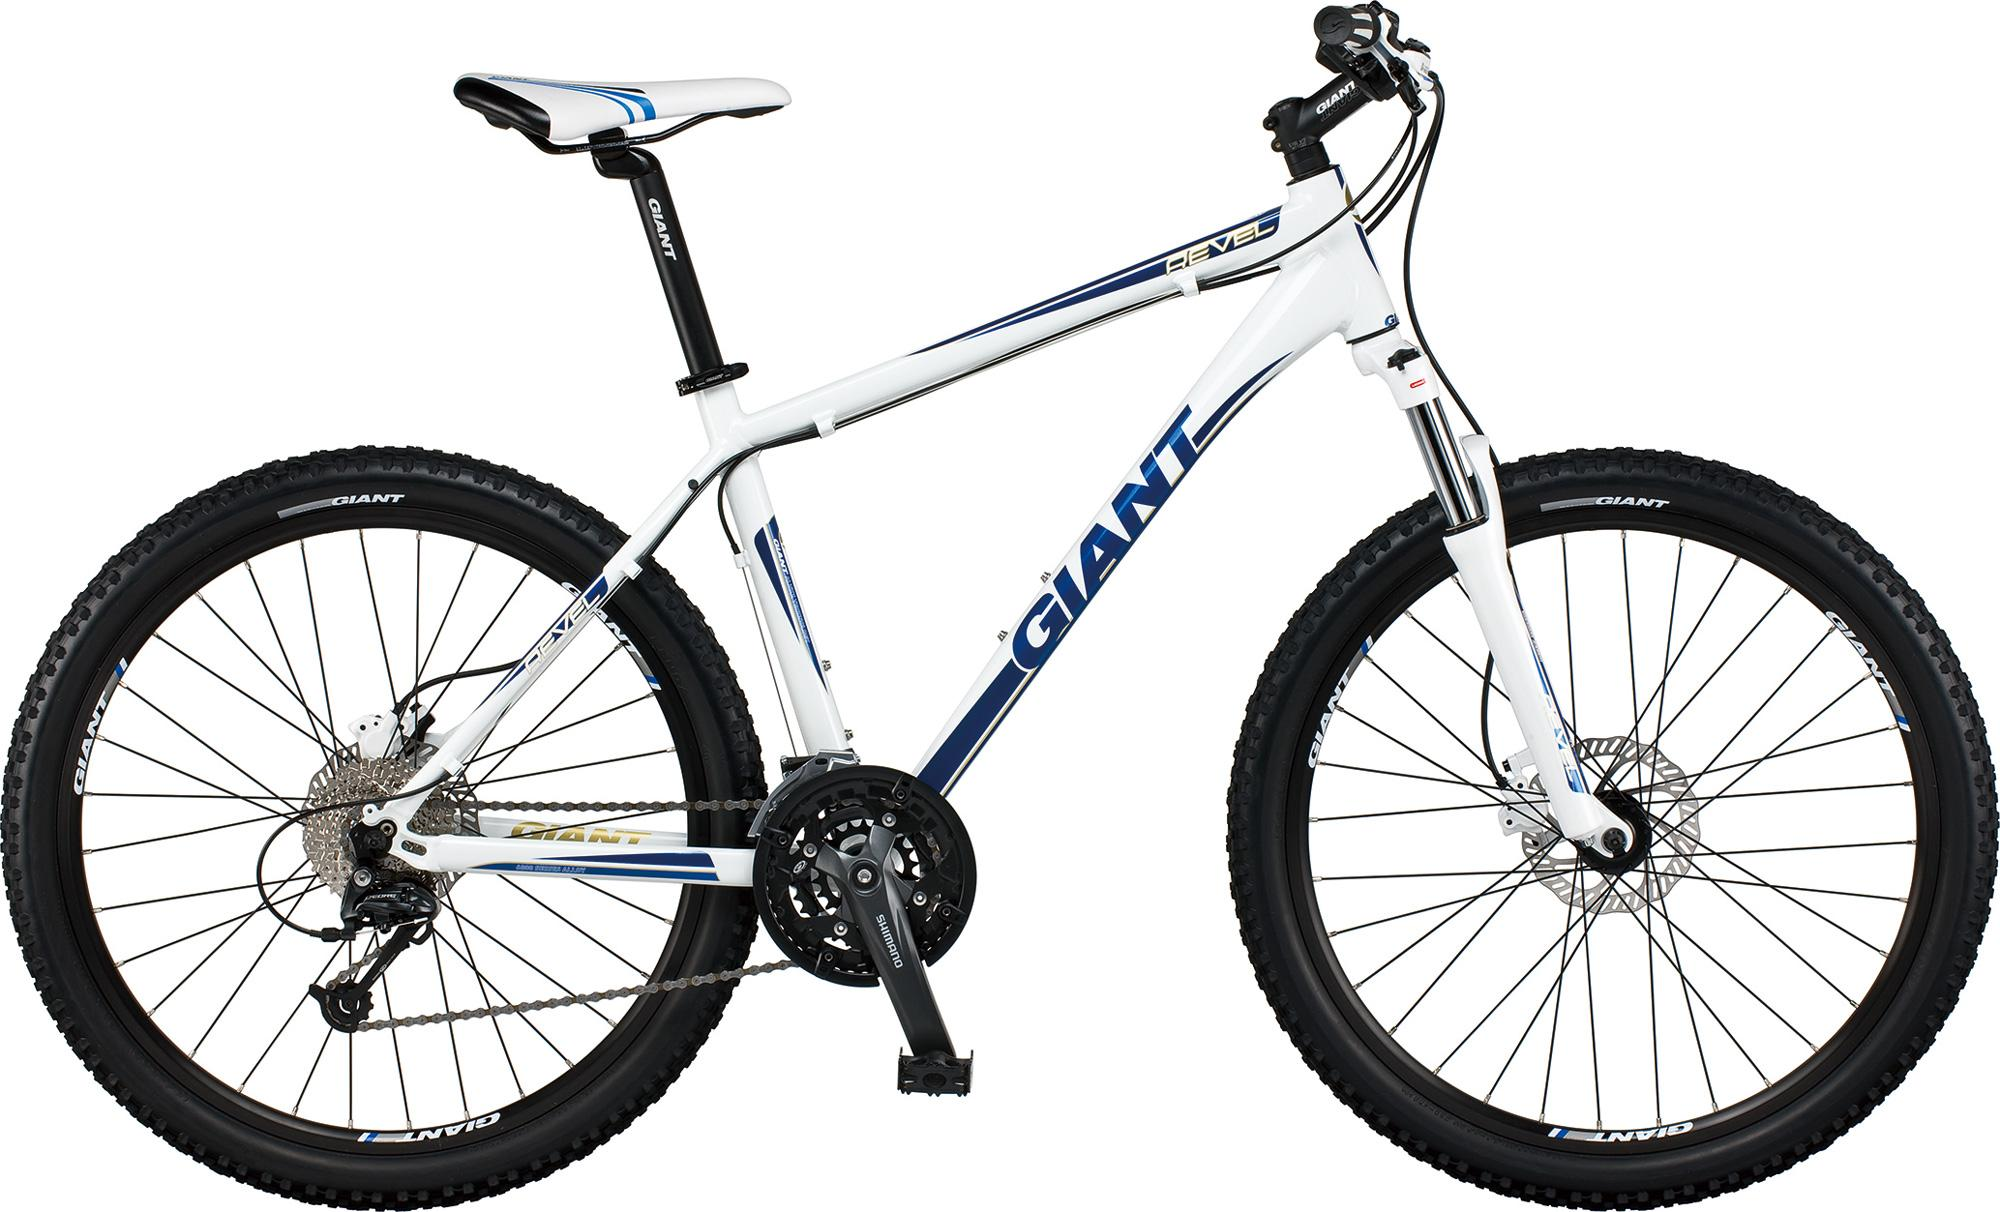 http://www.giant-bicycles.com/_generated/_generated_ru/bikes/models/images/2000/2012/Revel-0-Disc-WhiteBlue.jpg